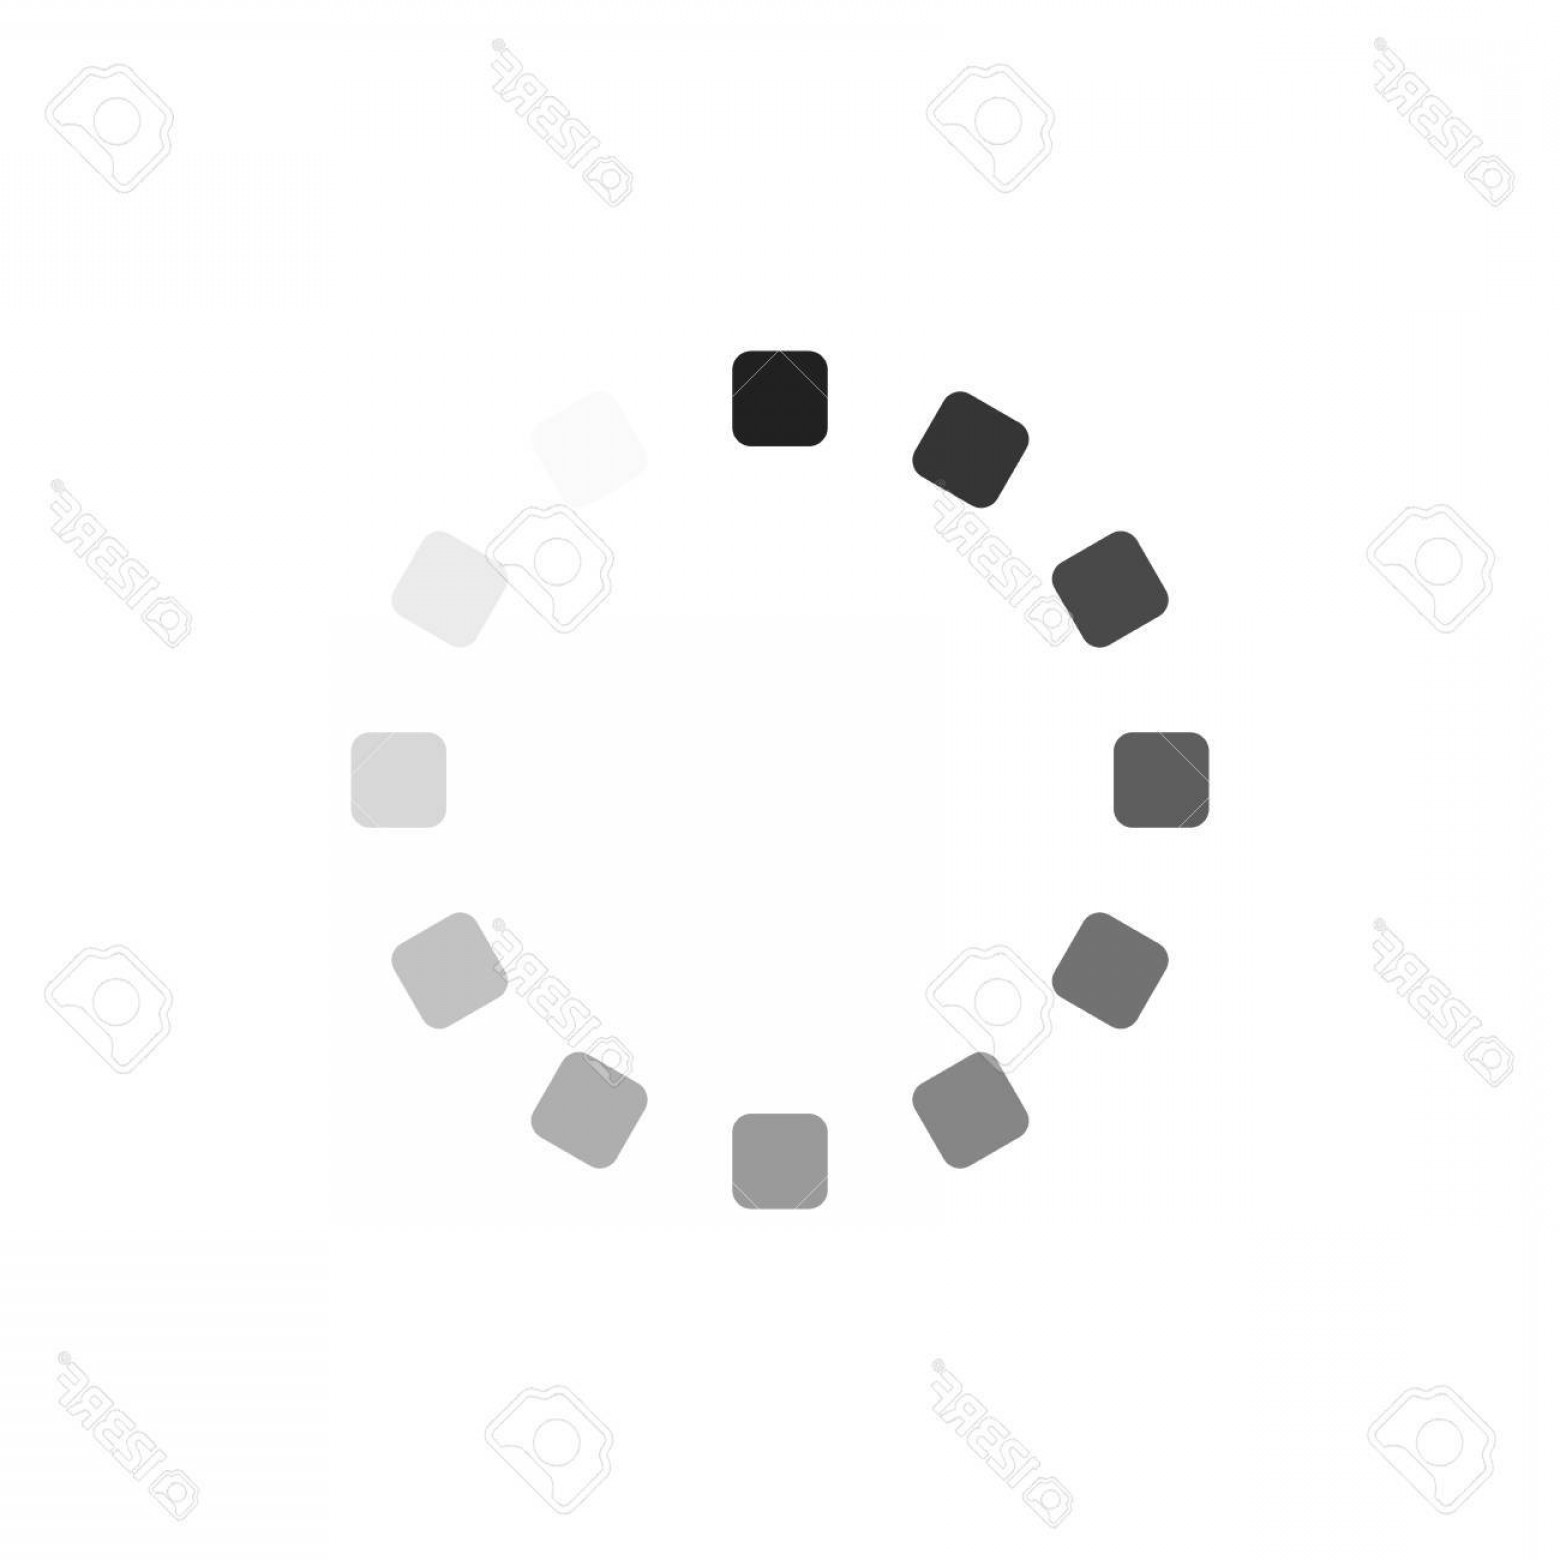 Downloadable Vector Cross: Photostock Vector Vector Illustration Of Circles Showing Downloading Process Isolated On White